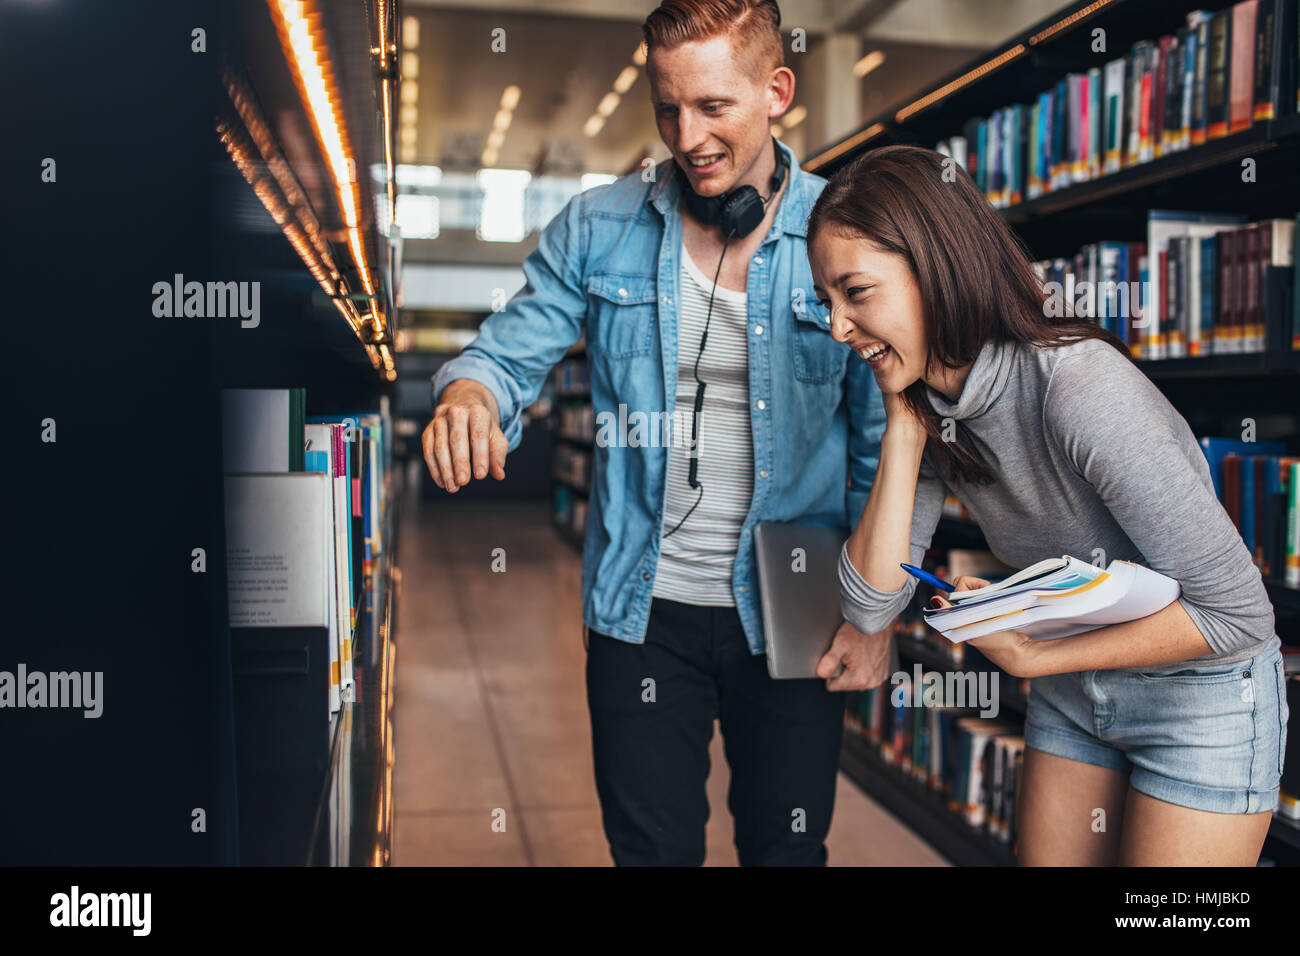 Image of happy young man and woman standing by book shelf in library and looking for books. Students at college - Stock Image